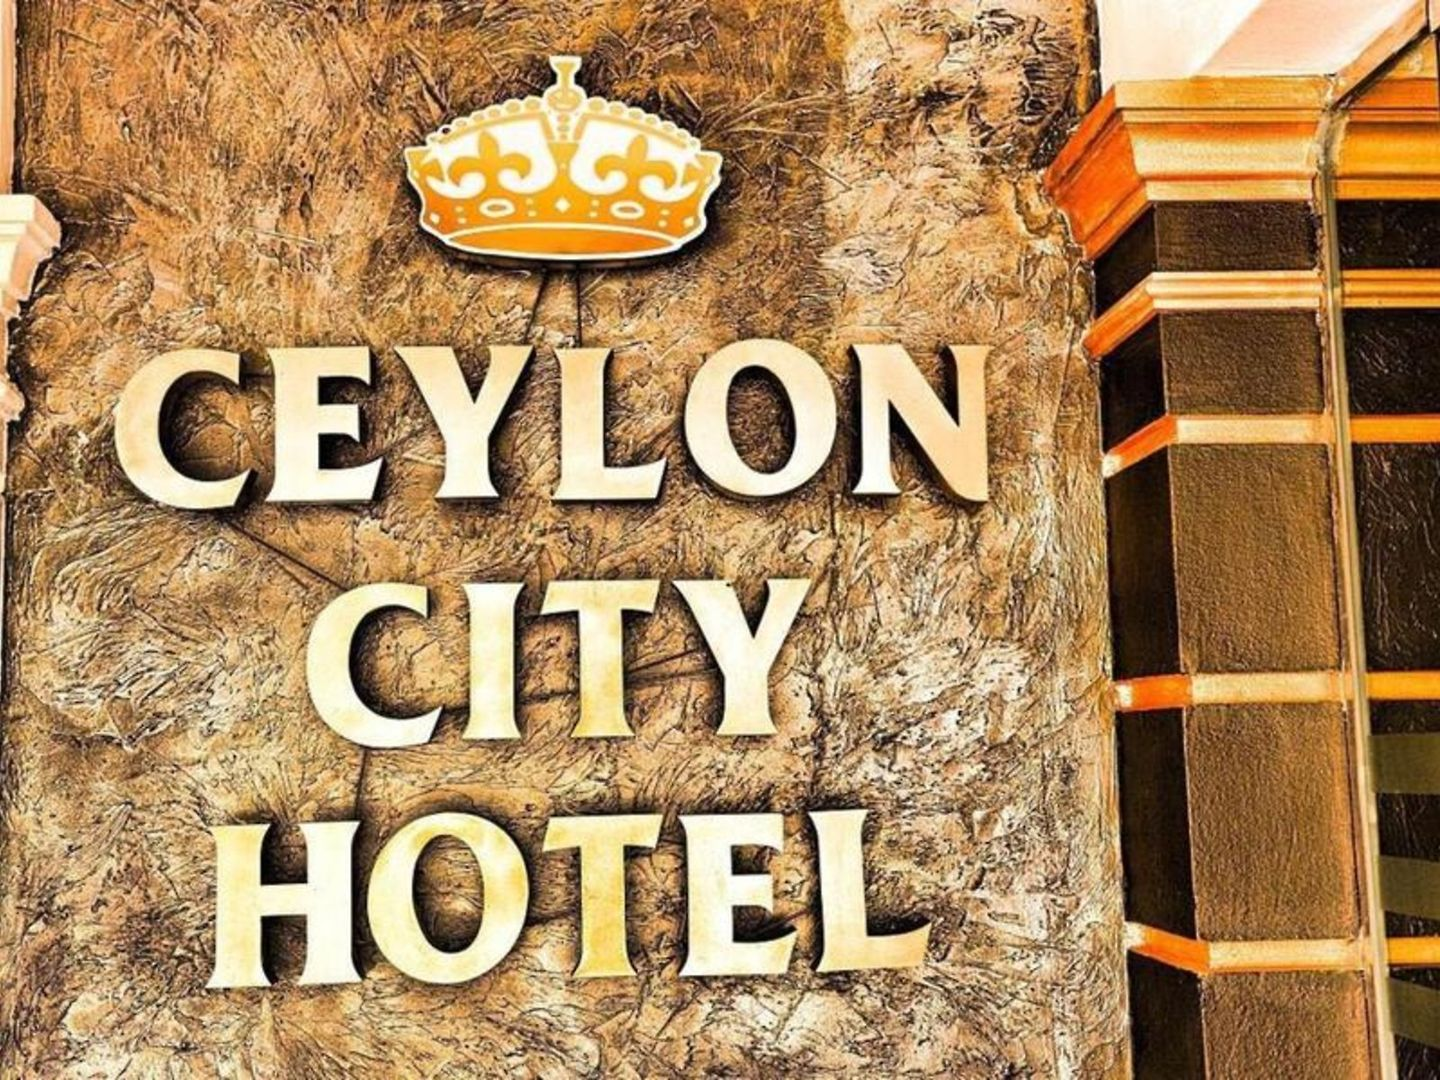 Ceylon City Hotel - hotely